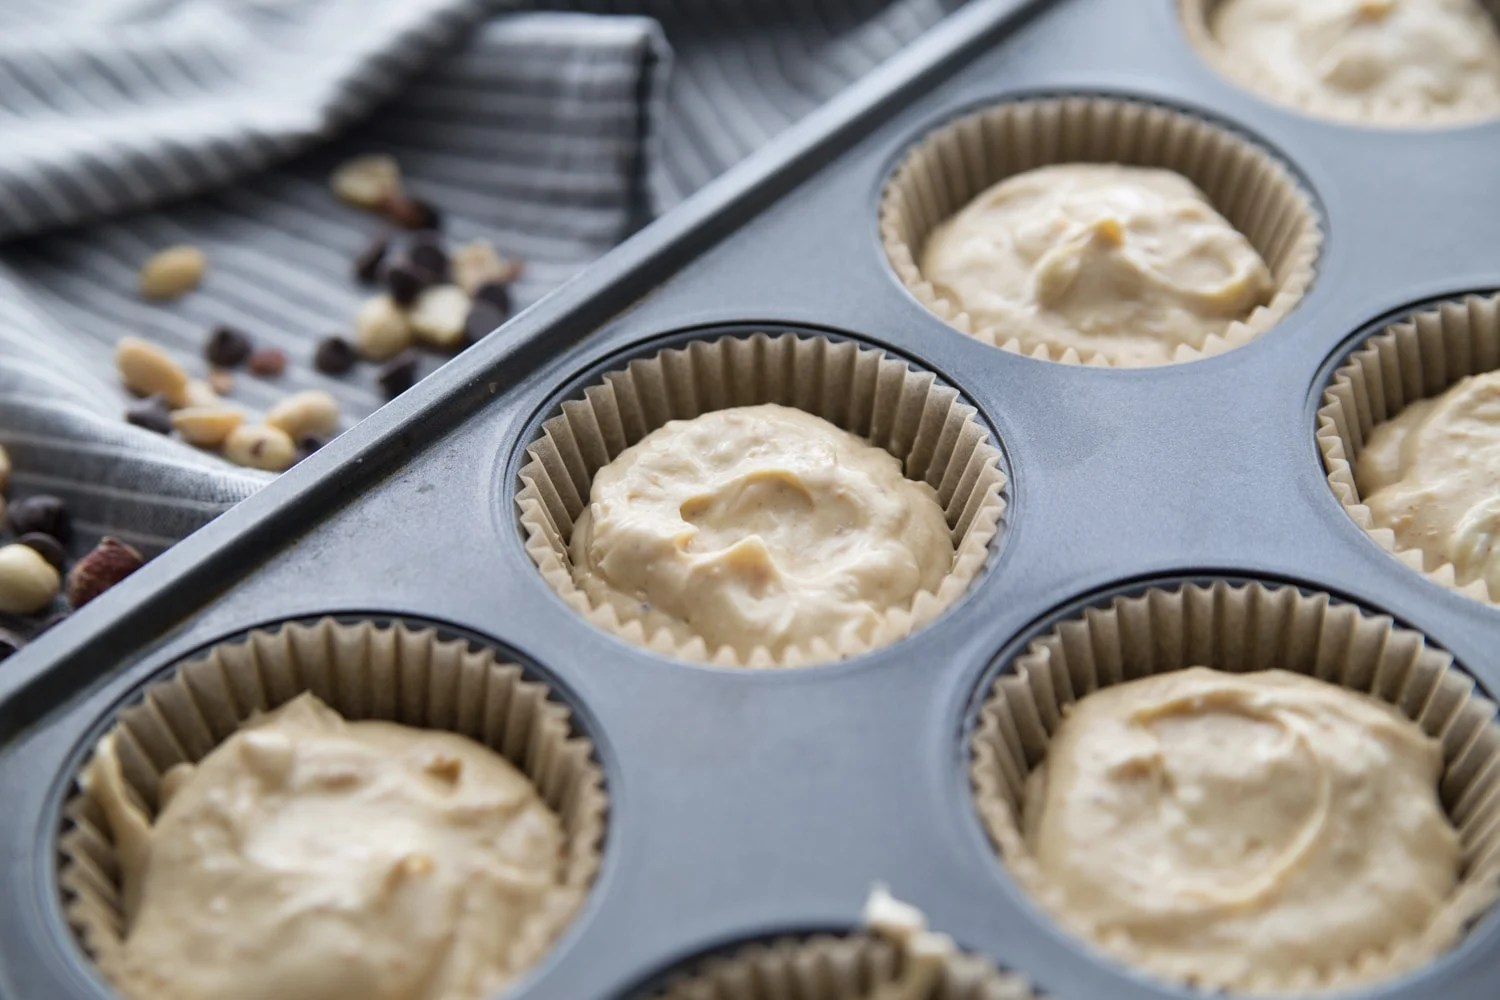 raw cheesecake batter in a muffin tin lined with cupcake liners